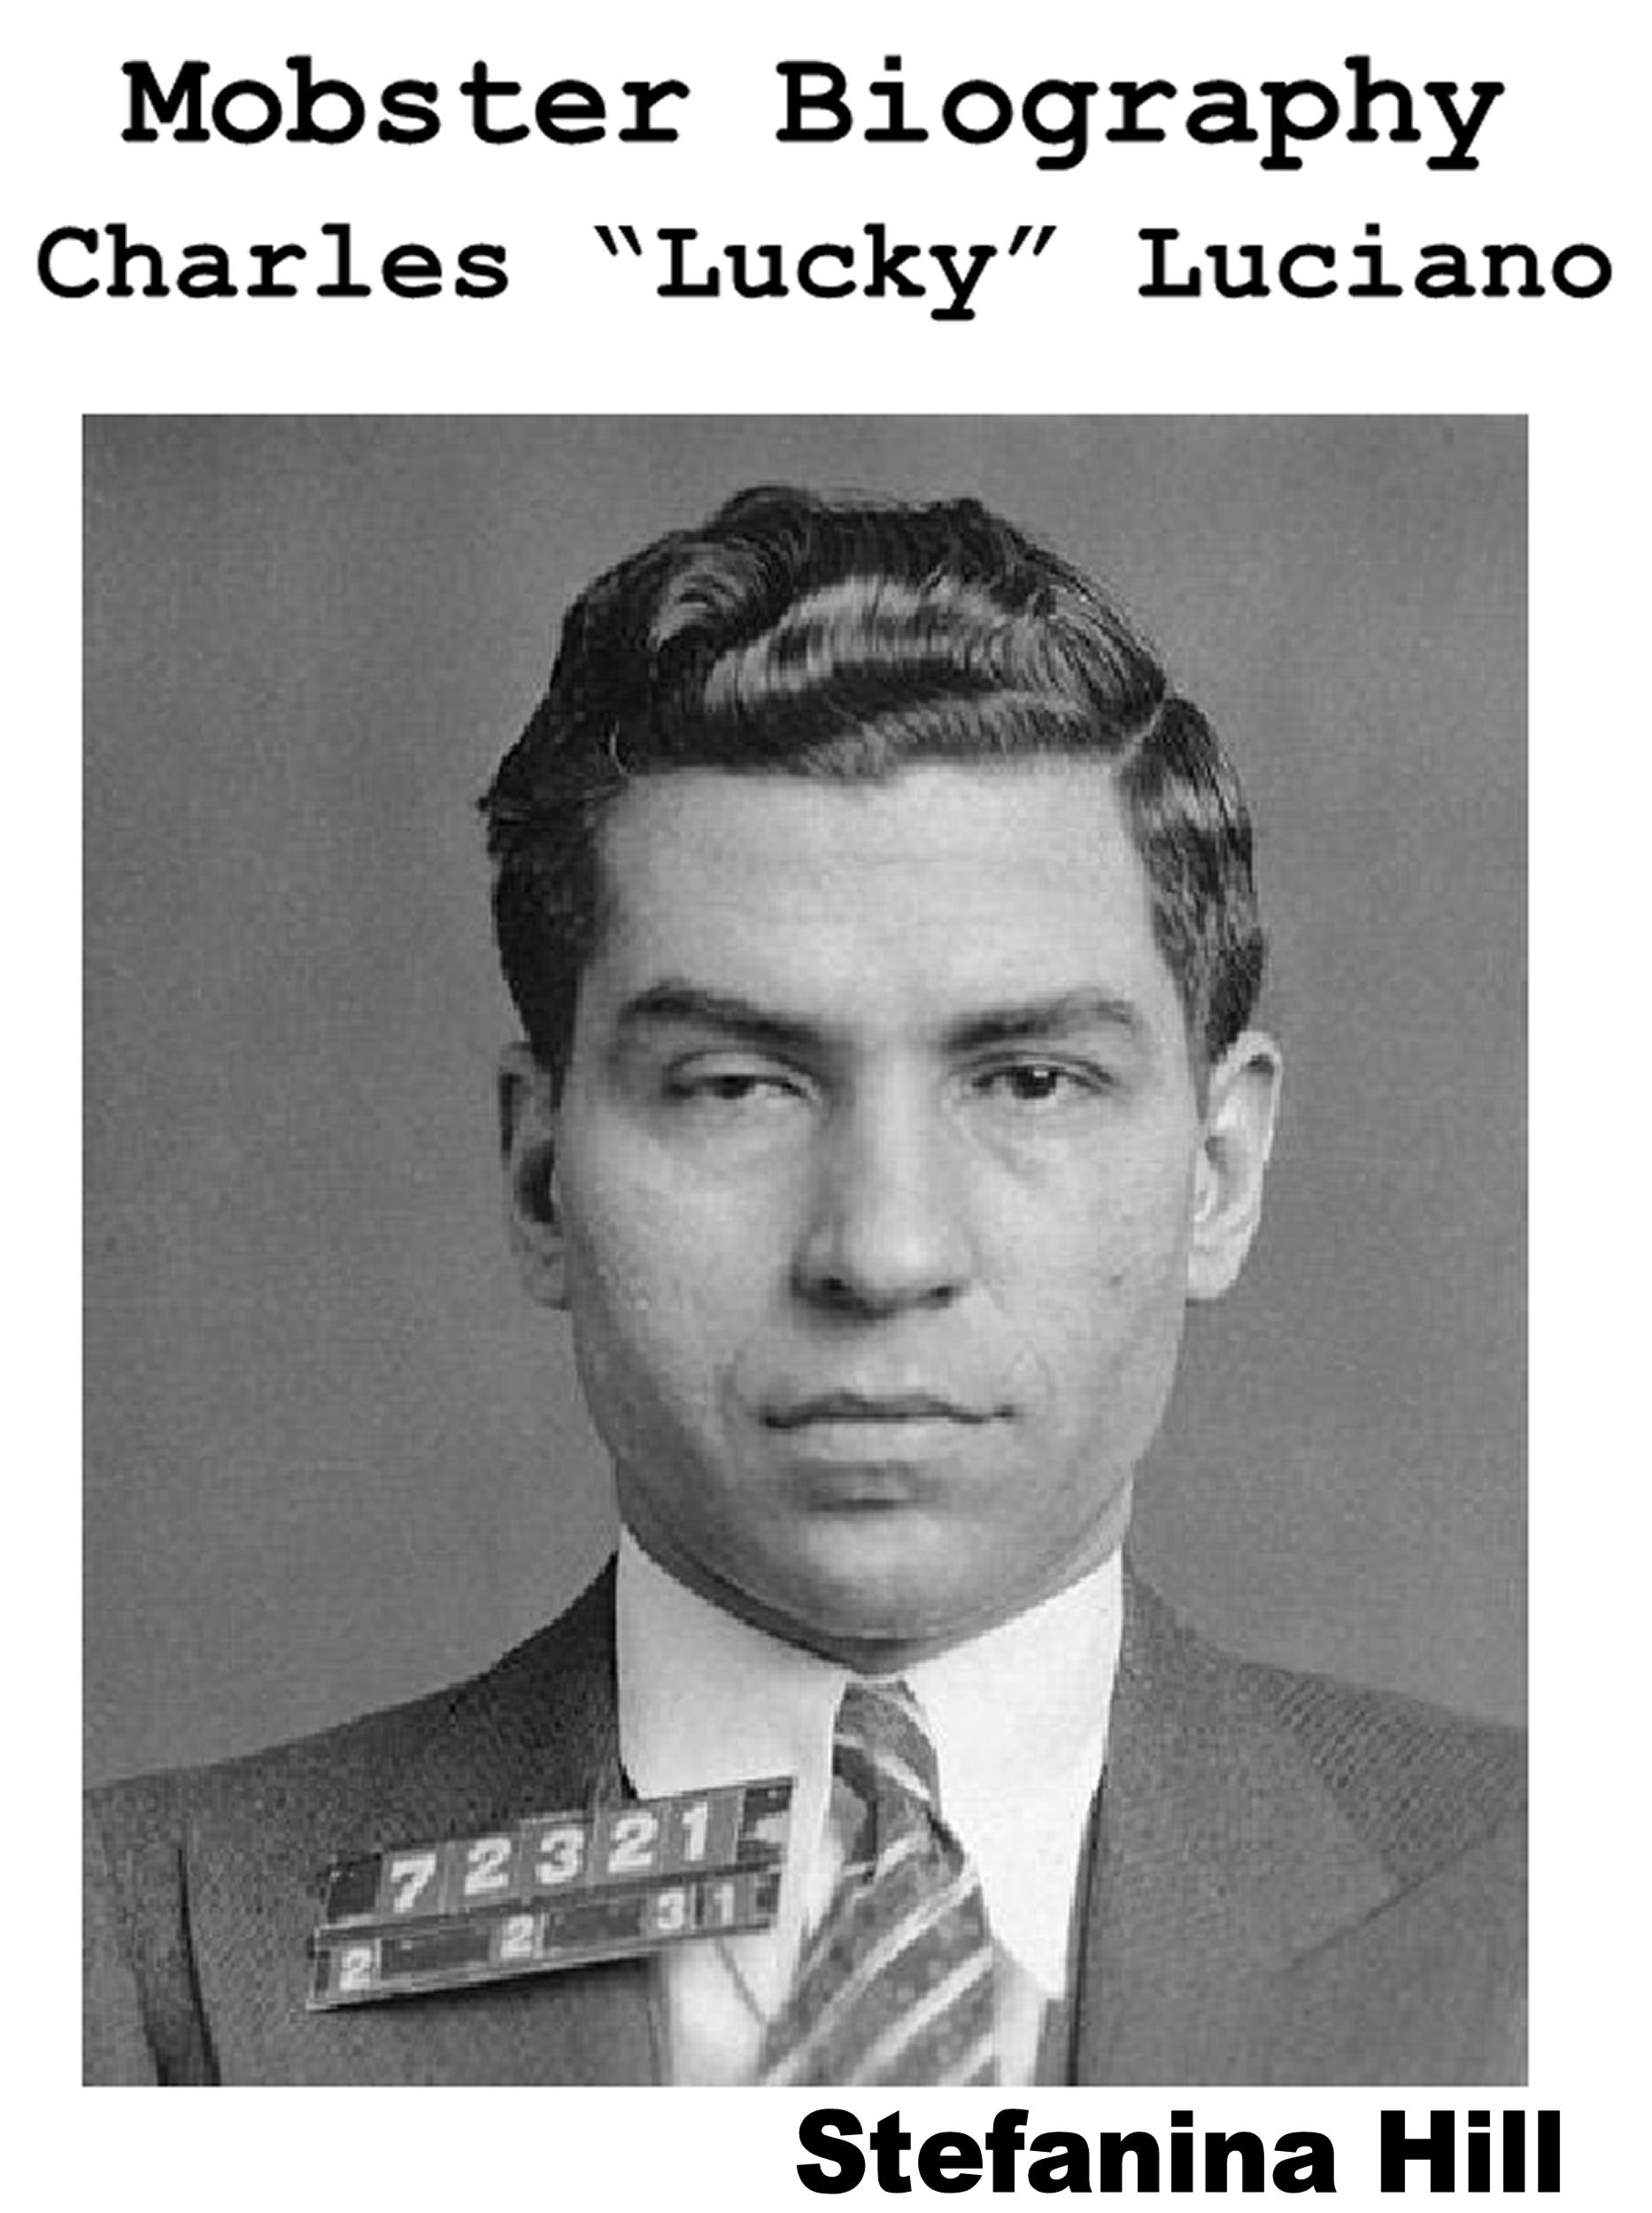 biography of charles lucky luciano essay Finally, with persuasion from lucky luciano and thinking he had made a deal to serve only a short prison sentence, lepke made an agreement with the noted radio and newspaper columnist, walter winchell, to turn himself in j edgar hoover, of the federal bureau of investigation, approved the surrender arrangement.